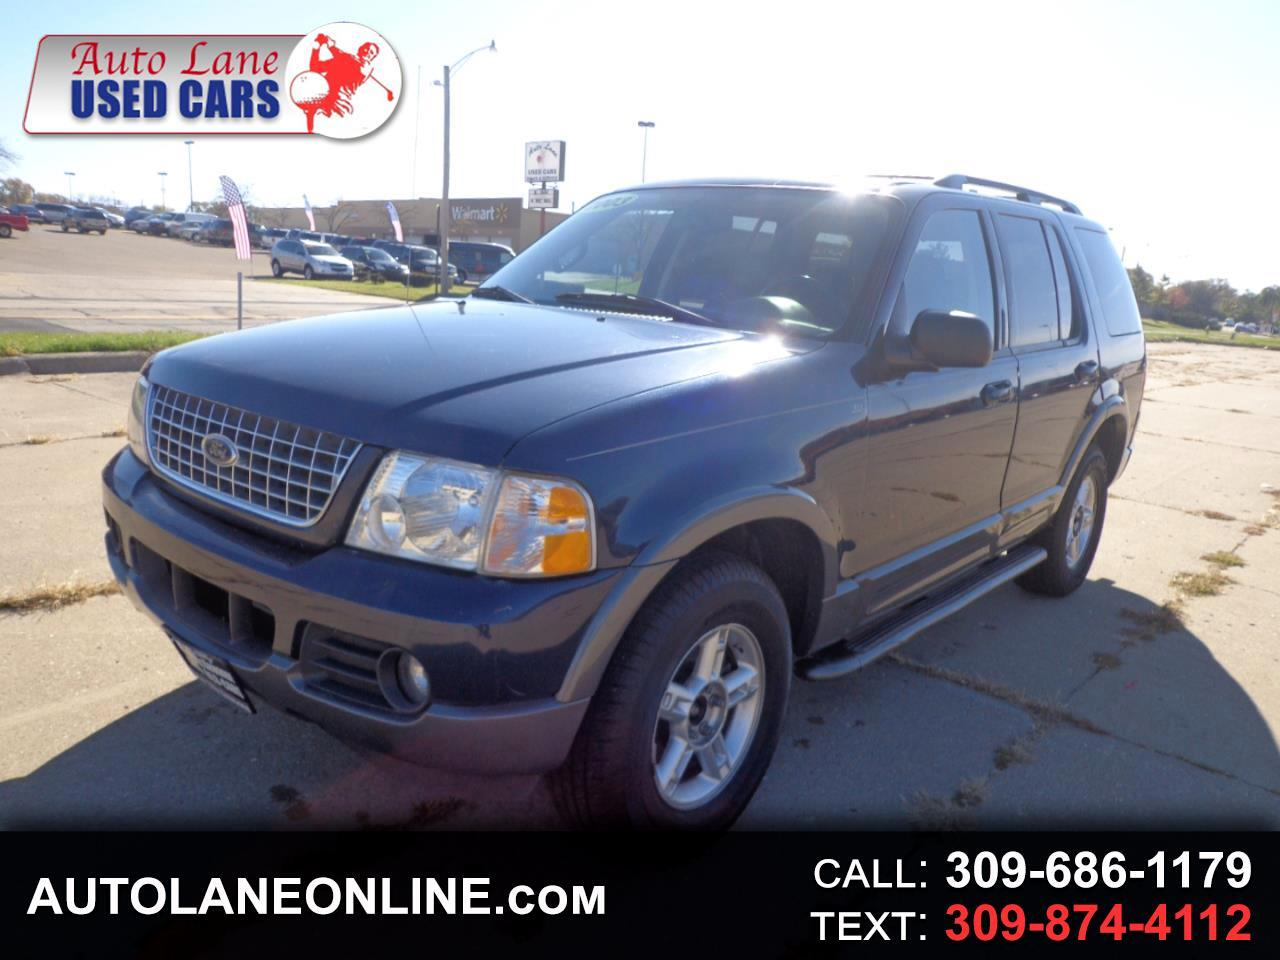 buy here pay here 2003 ford explorer 4dr 114 wb 4 0l xlt sport 4wd for sale in peoria il 61604. Black Bedroom Furniture Sets. Home Design Ideas